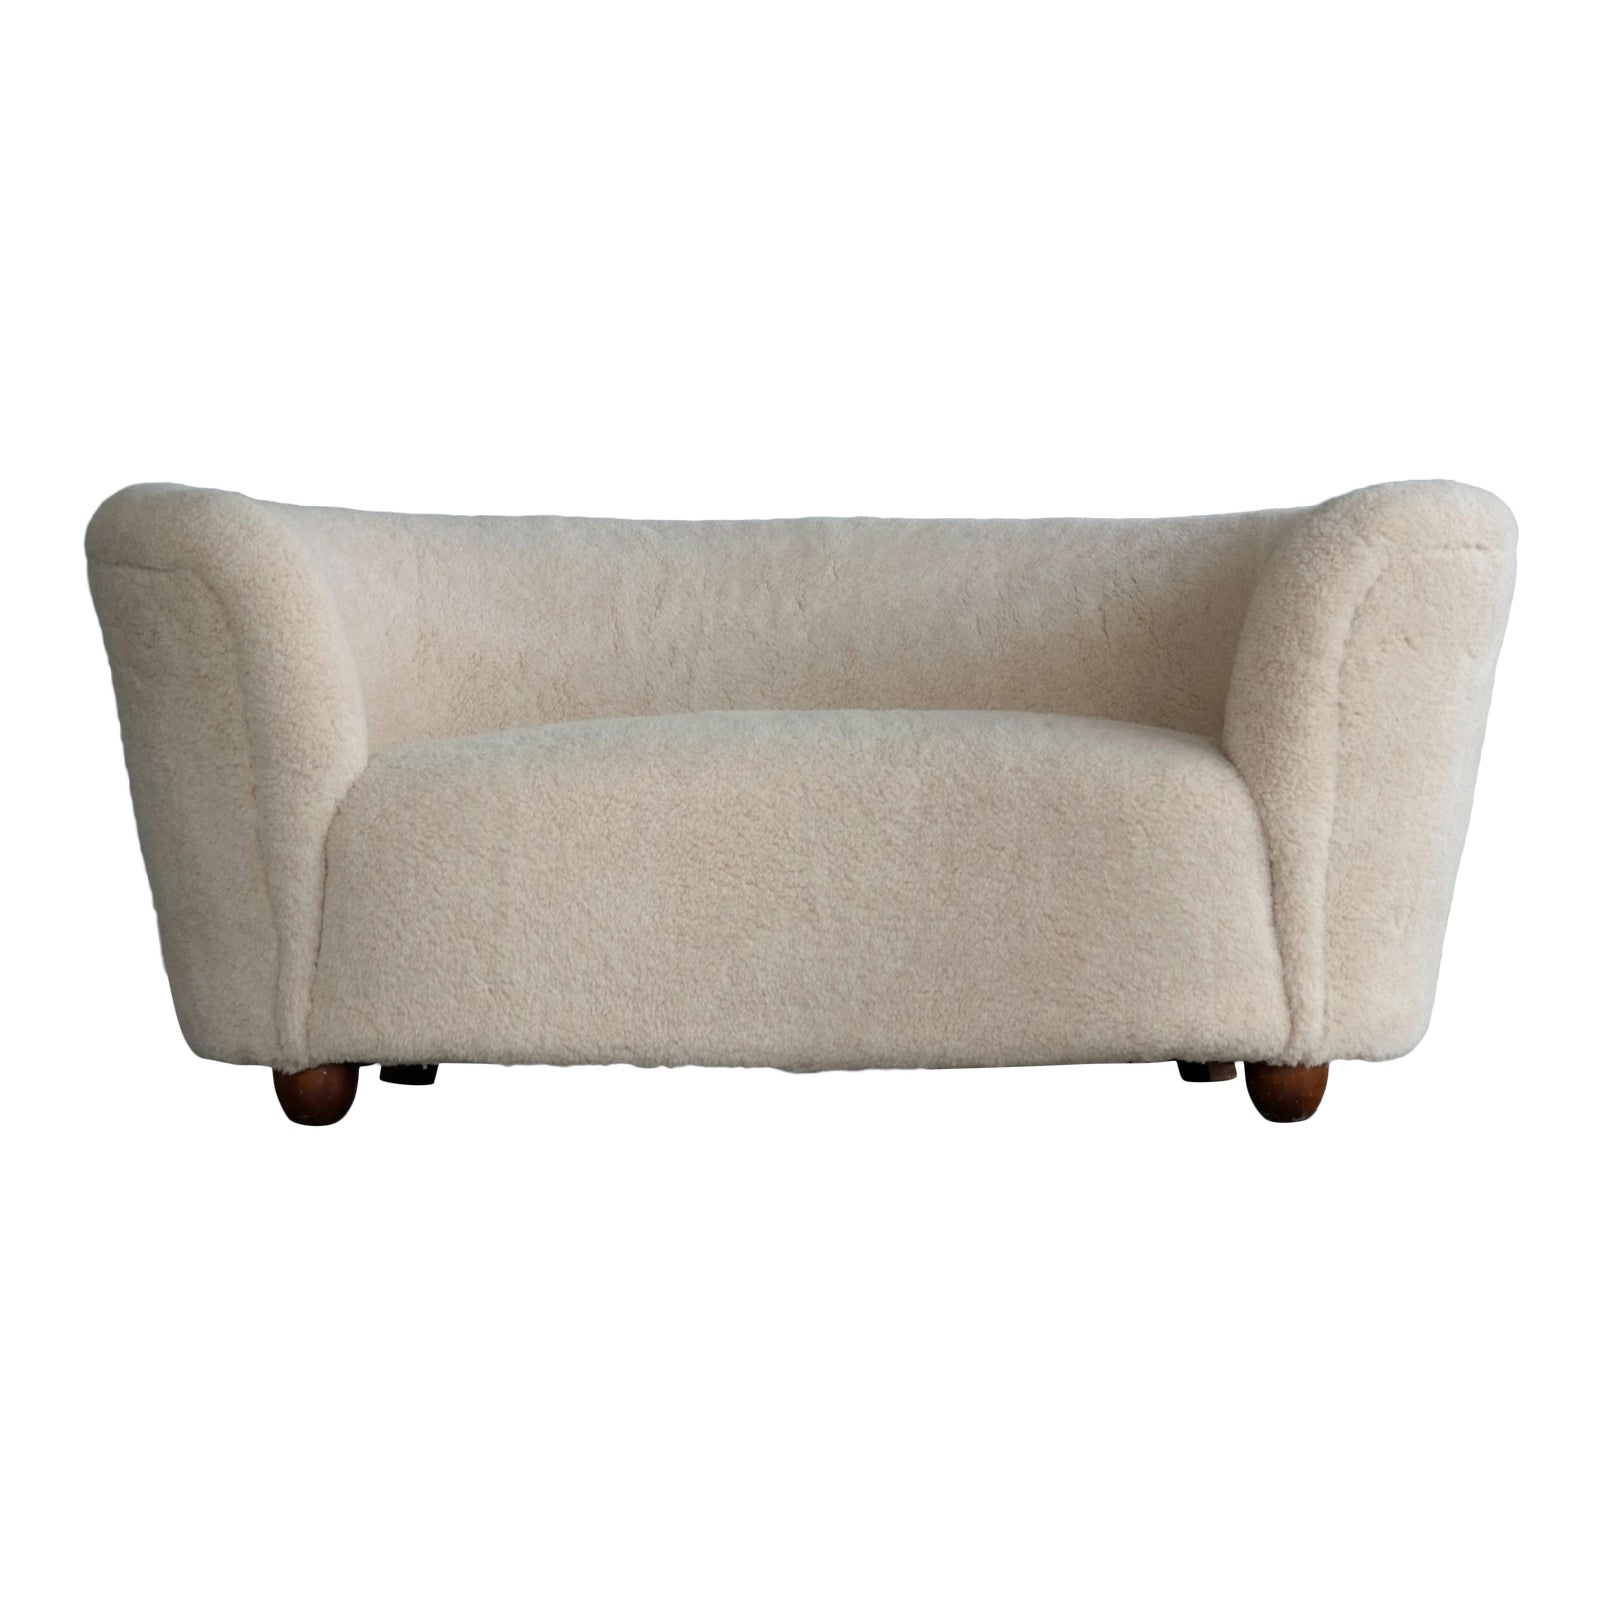 Viggo Boesen Style Curved Sofa Or Loveseat In Lambswool Attributed